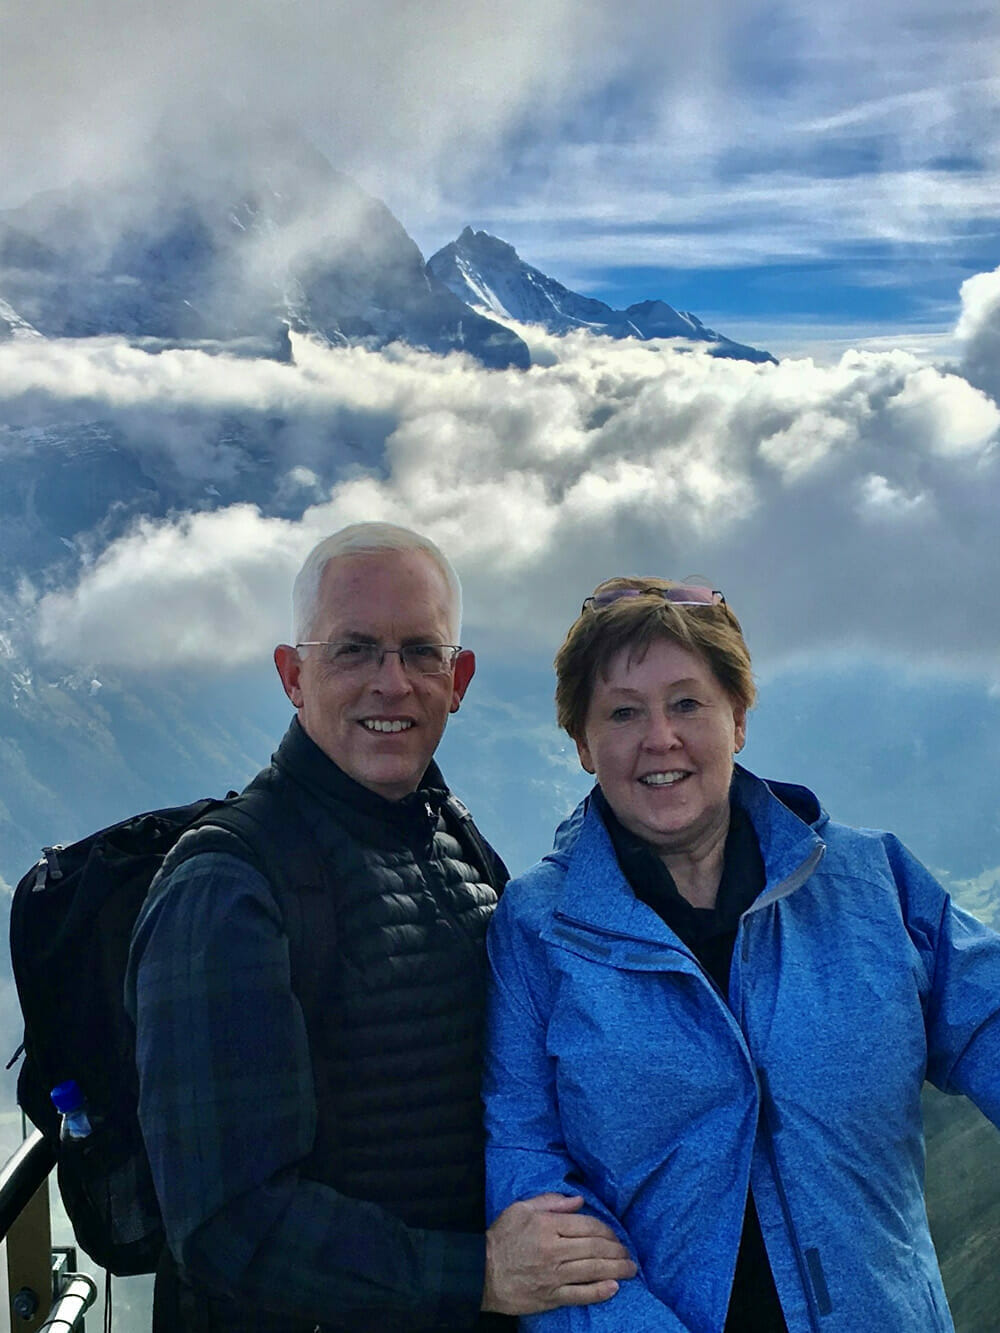 Jim Zuber in the mountains with his wife.